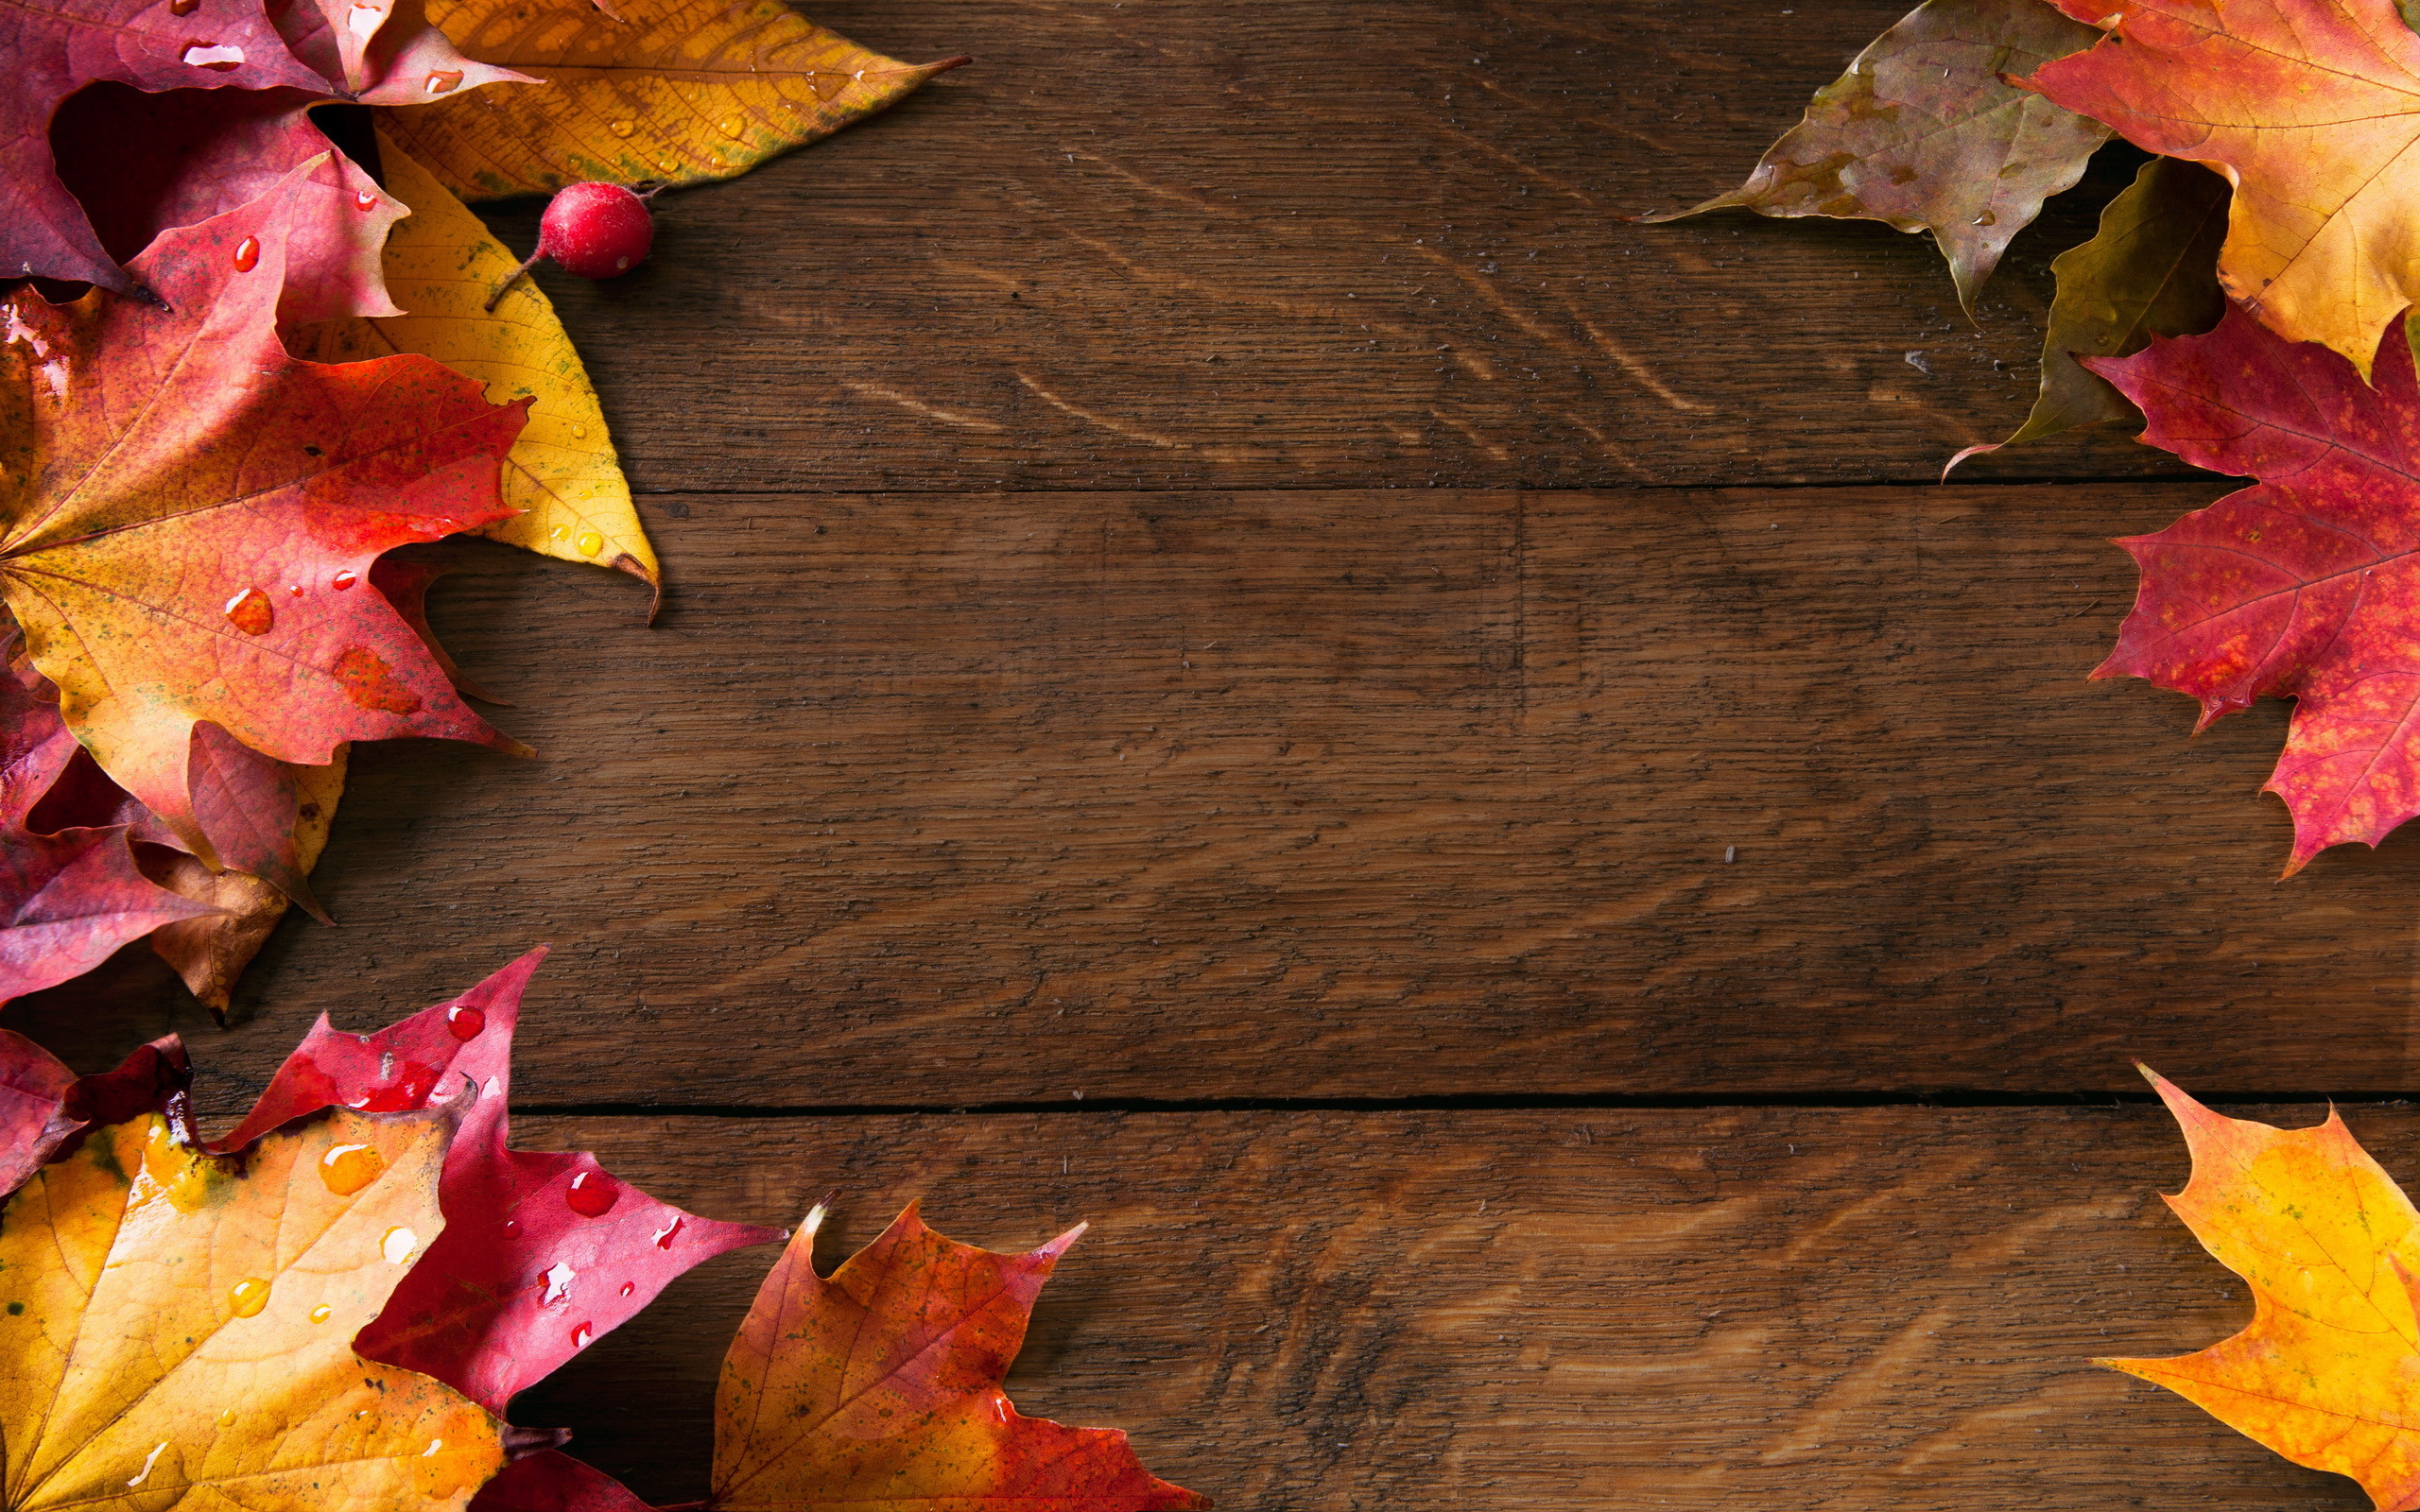 Fall Backgrounds Wallpaper 67 Pictures